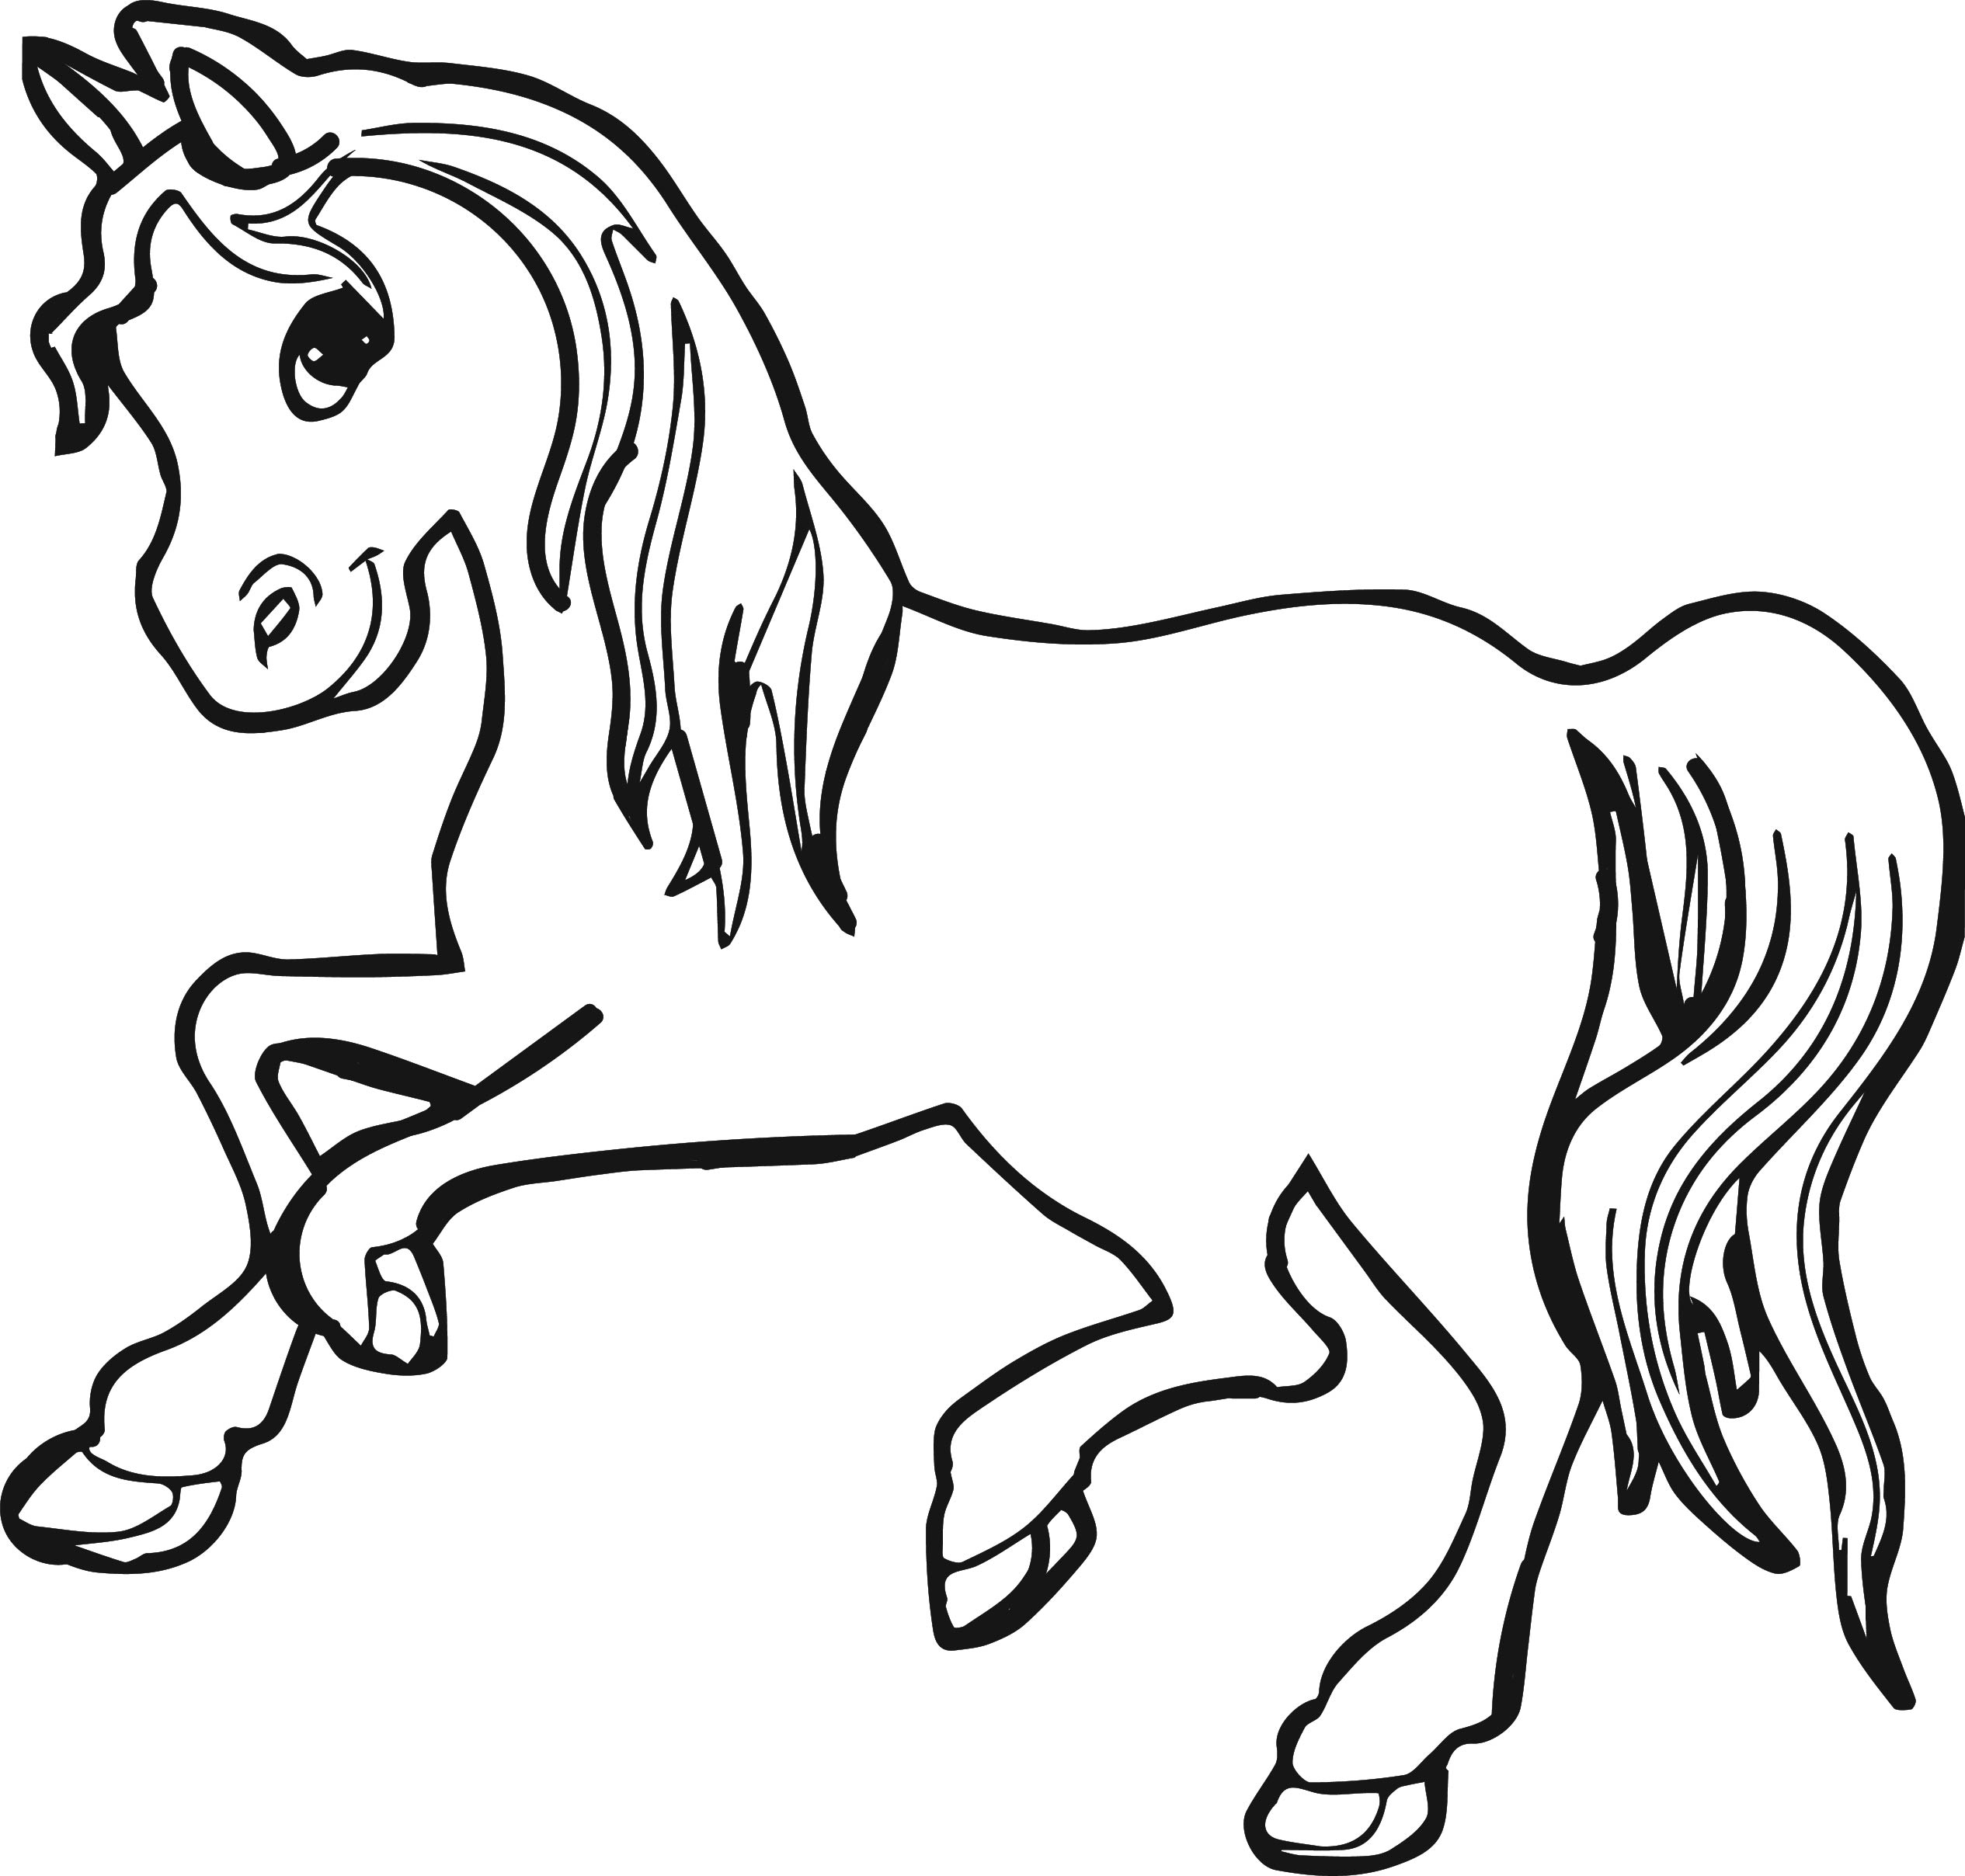 horse pages to color animal coloring pages for adults best coloring pages for color to horse pages